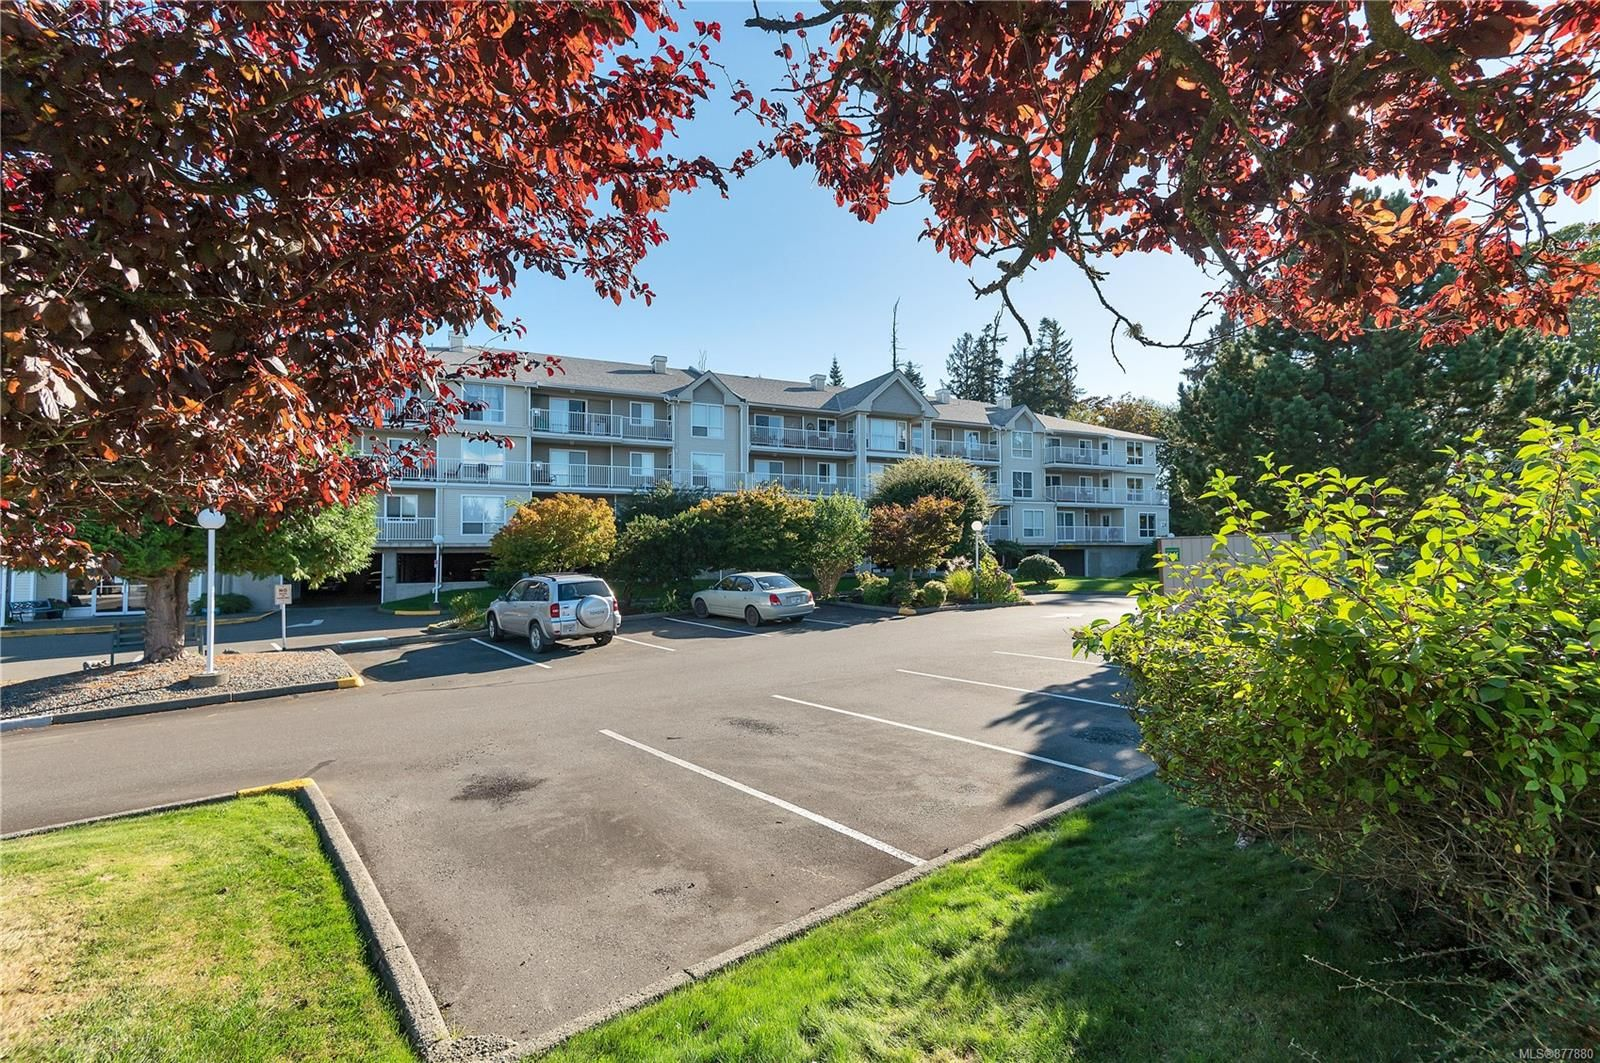 Main Photo: 205 155 Erickson Rd in : CR Willow Point Condo for sale (Campbell River)  : MLS®# 877880